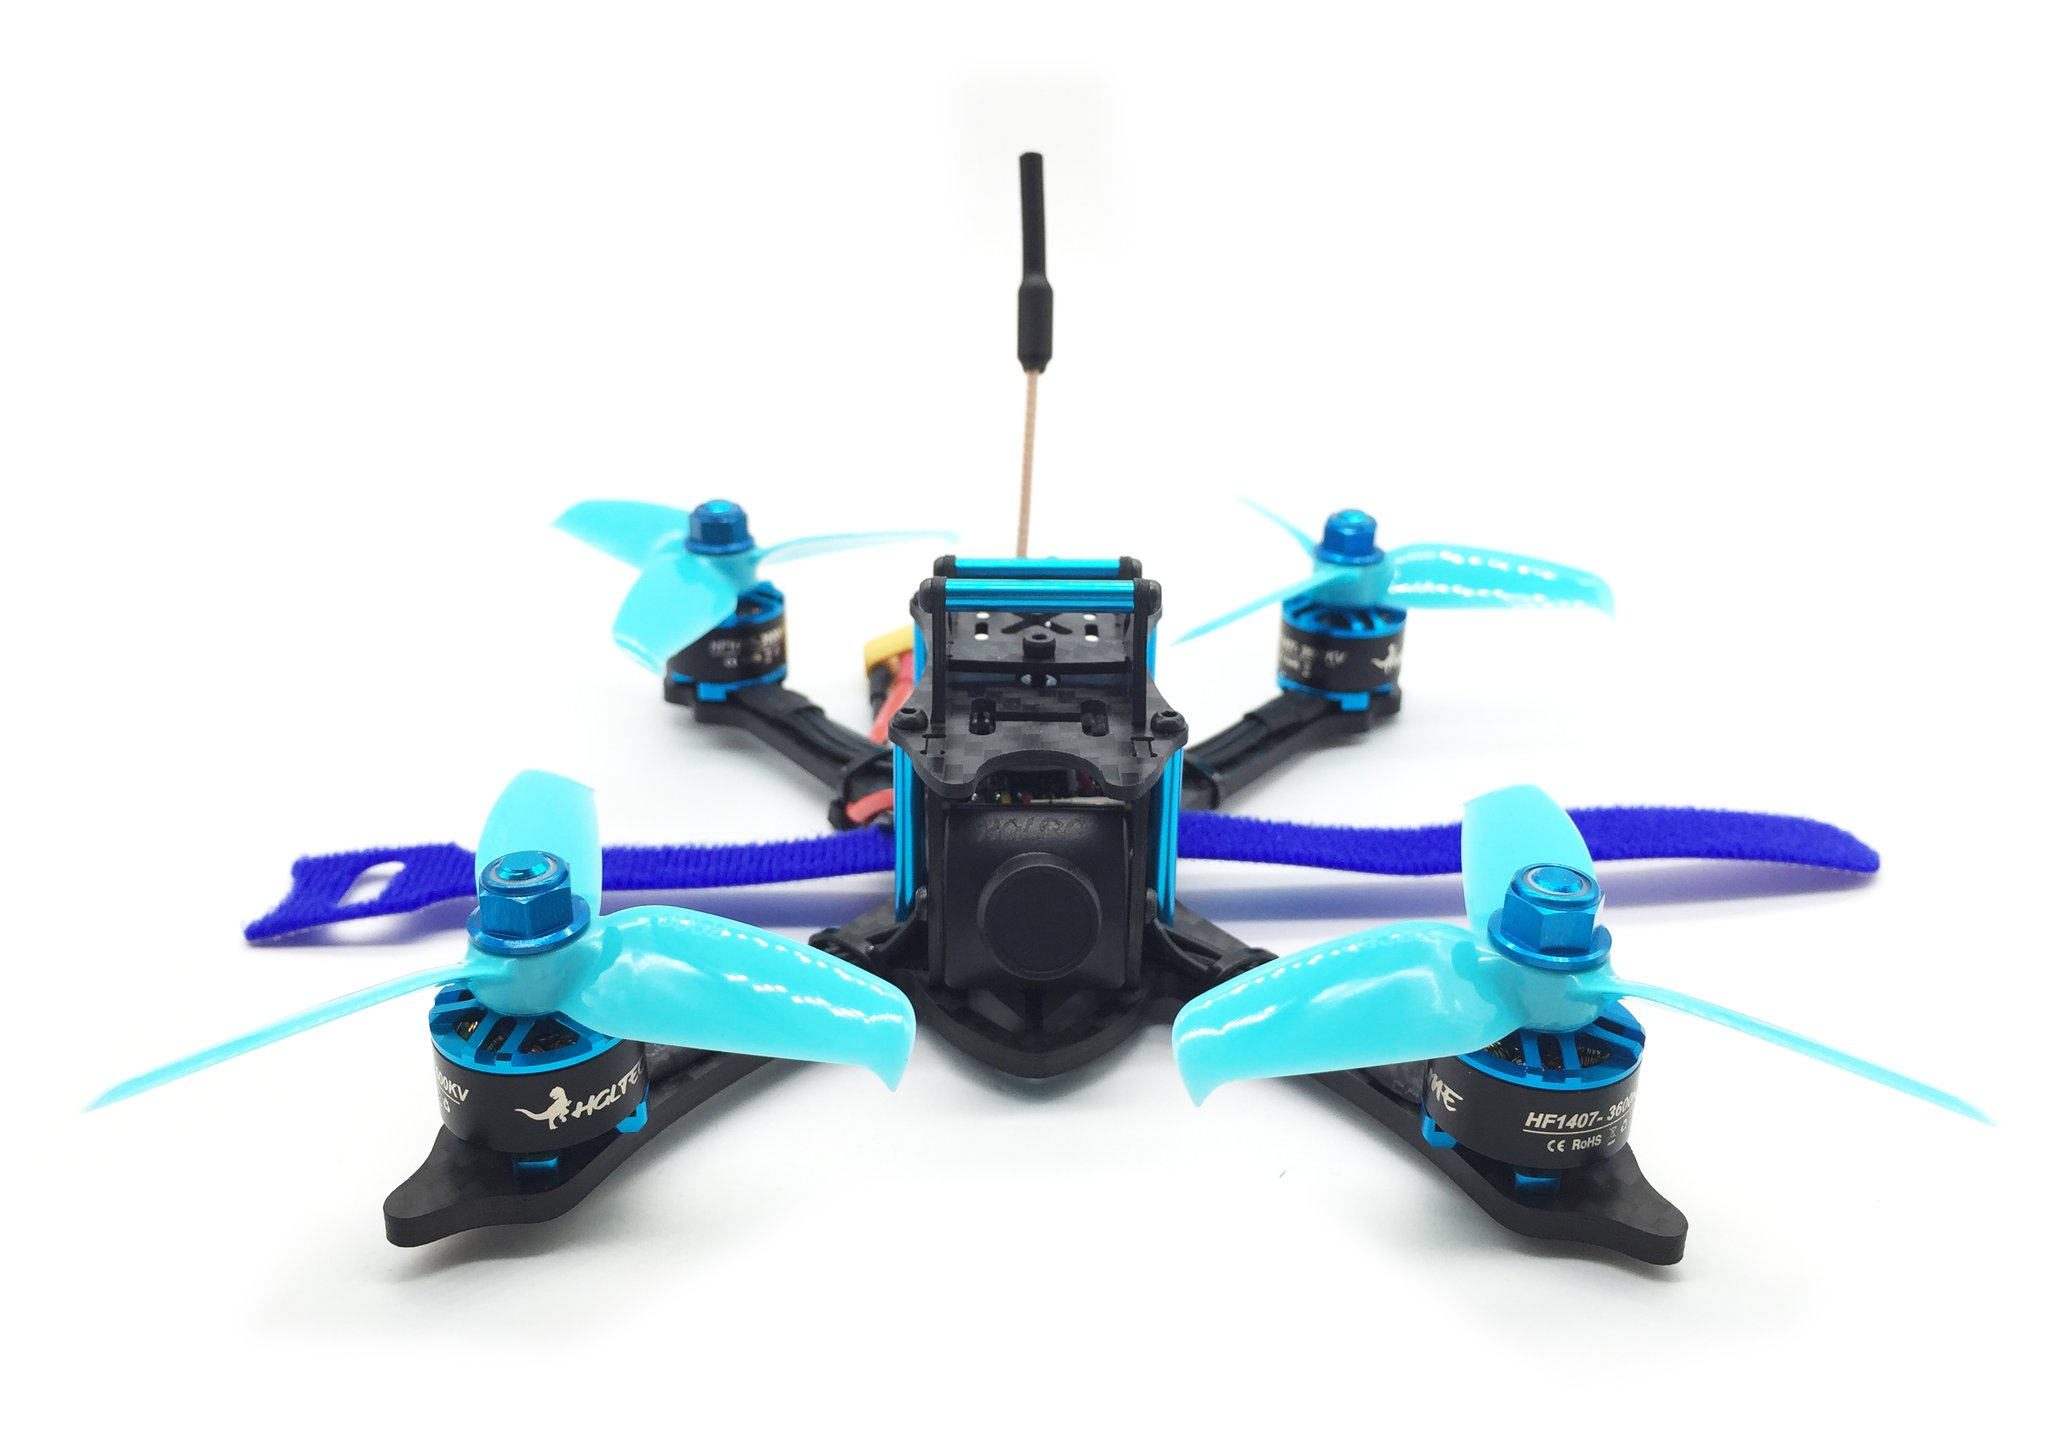 HGLRC XJB F428 145mm PNP FPV Racing Drone Blue